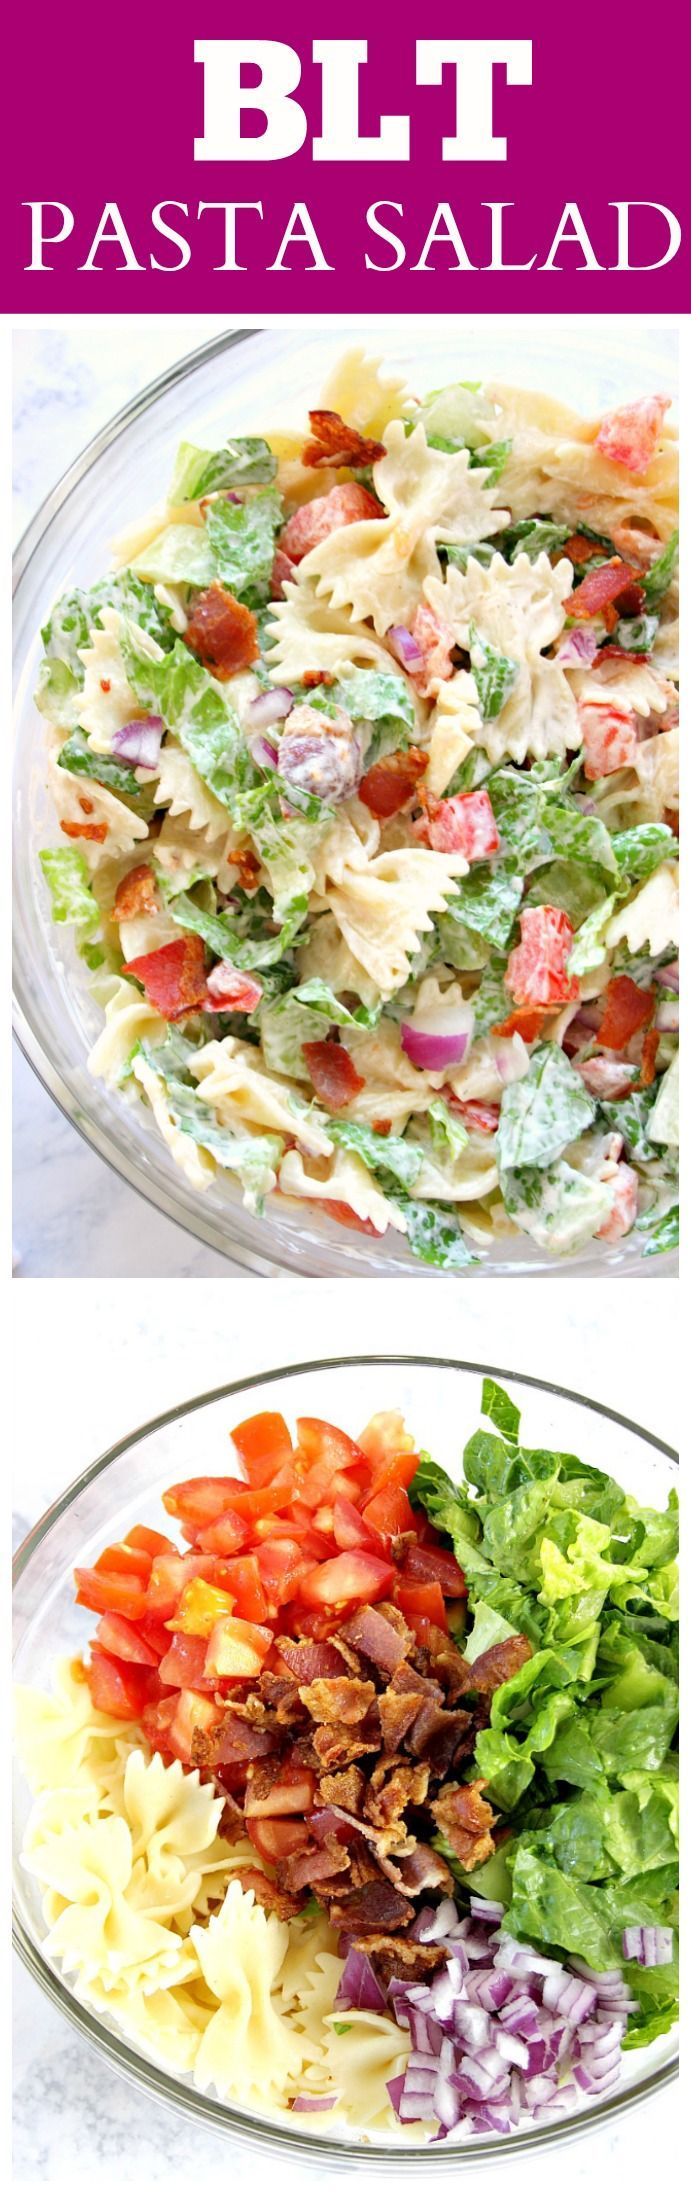 BLT Pasta Salad Recipe - delicious Summer pasta salad idea! Bacon, lettuce and tomatoes with farfalle pasta and creamy dressing. (cold vegetable snacks)